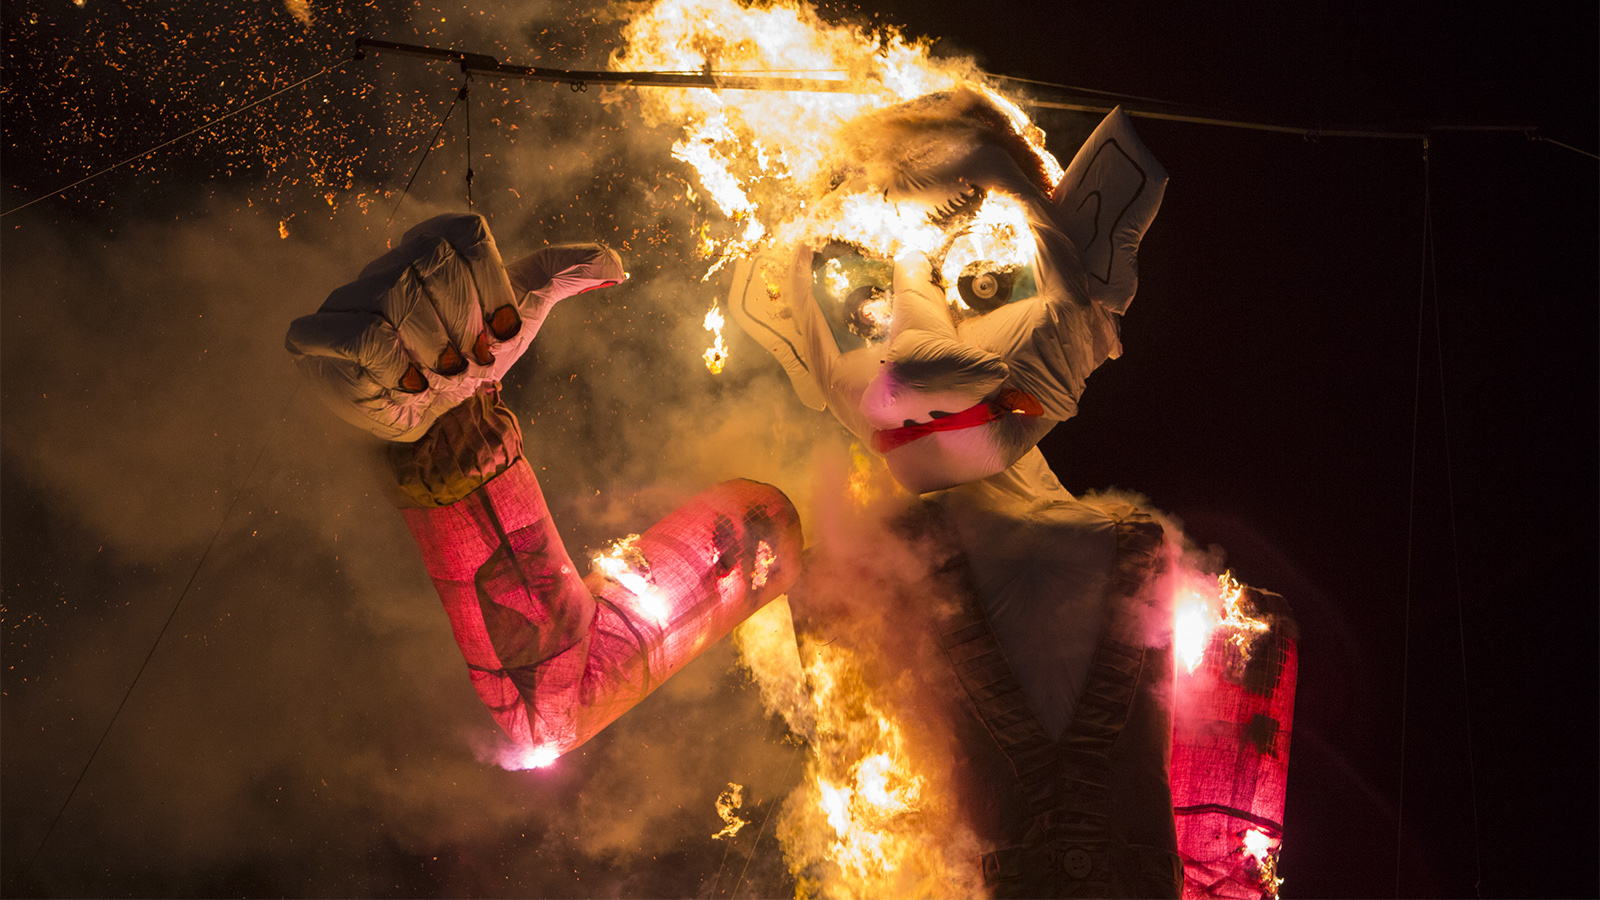 Zozobra: Santa Fe's Yearly Incineration of Sorrows